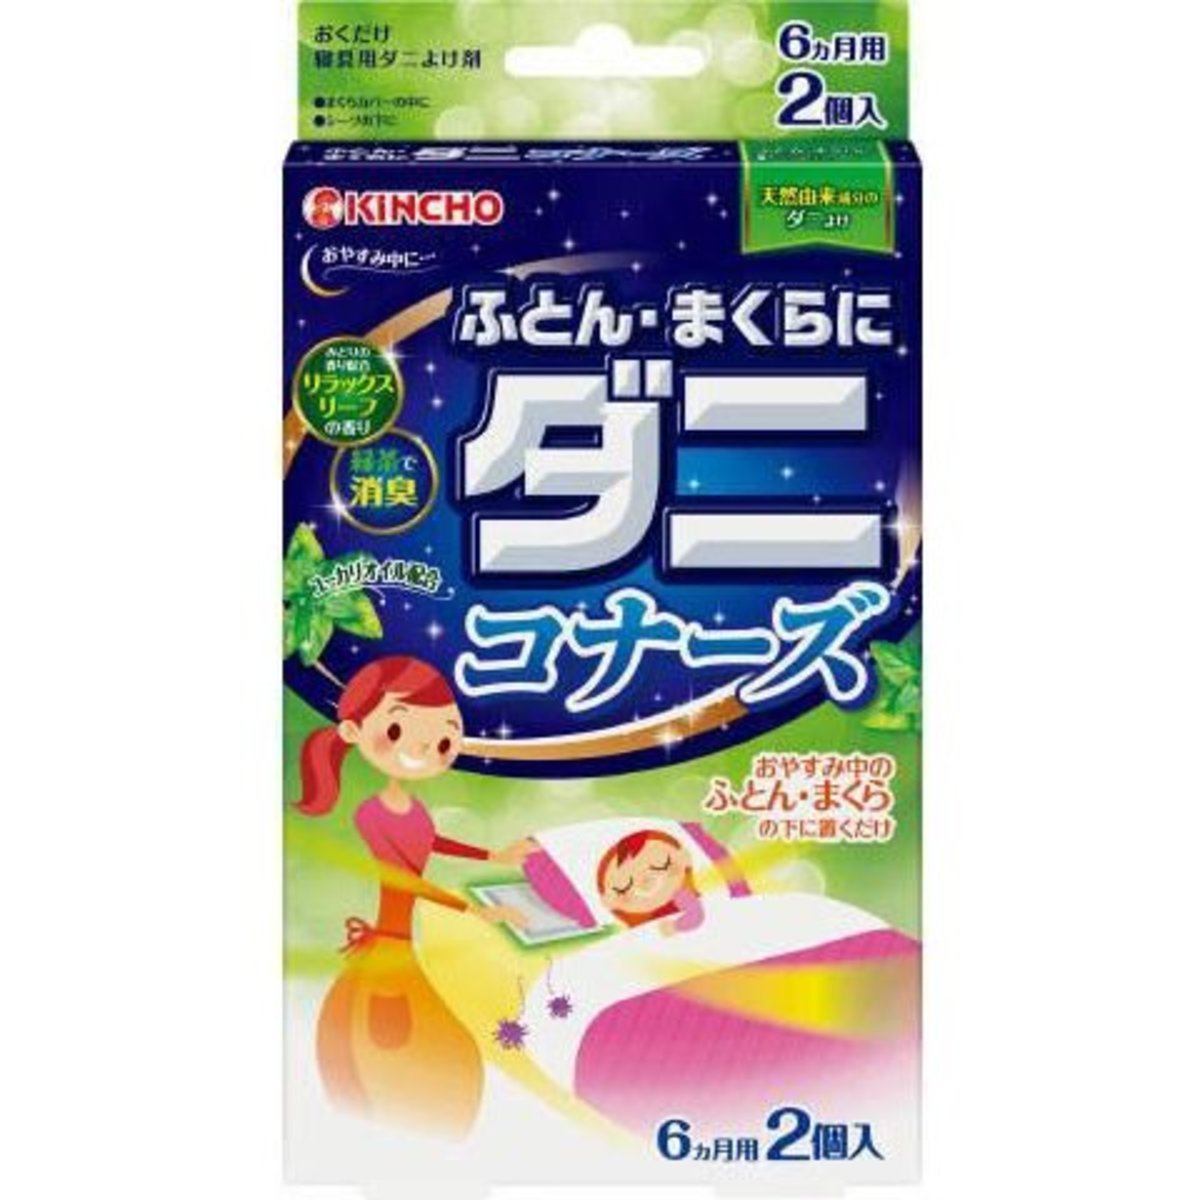 Japanese natural fragrance ingredients foliage flooding mites pads (Quilt use) (543805)